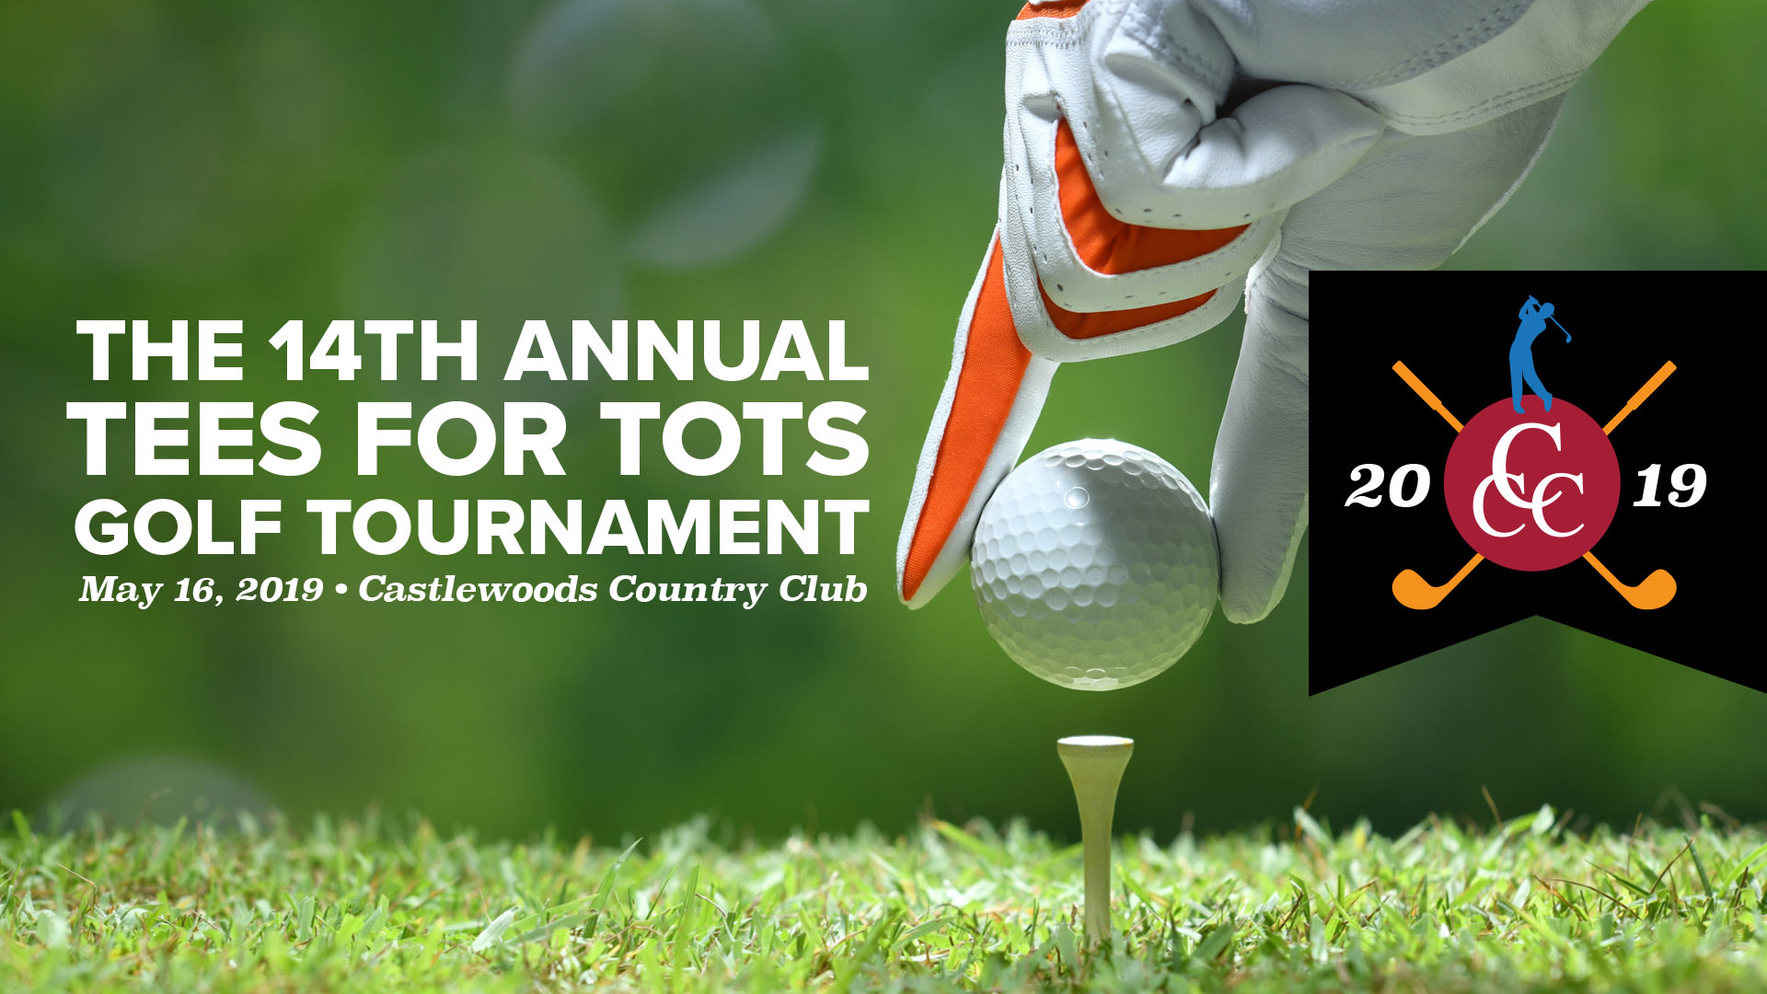 14th Annual Tees for Tots Golf Tournament image